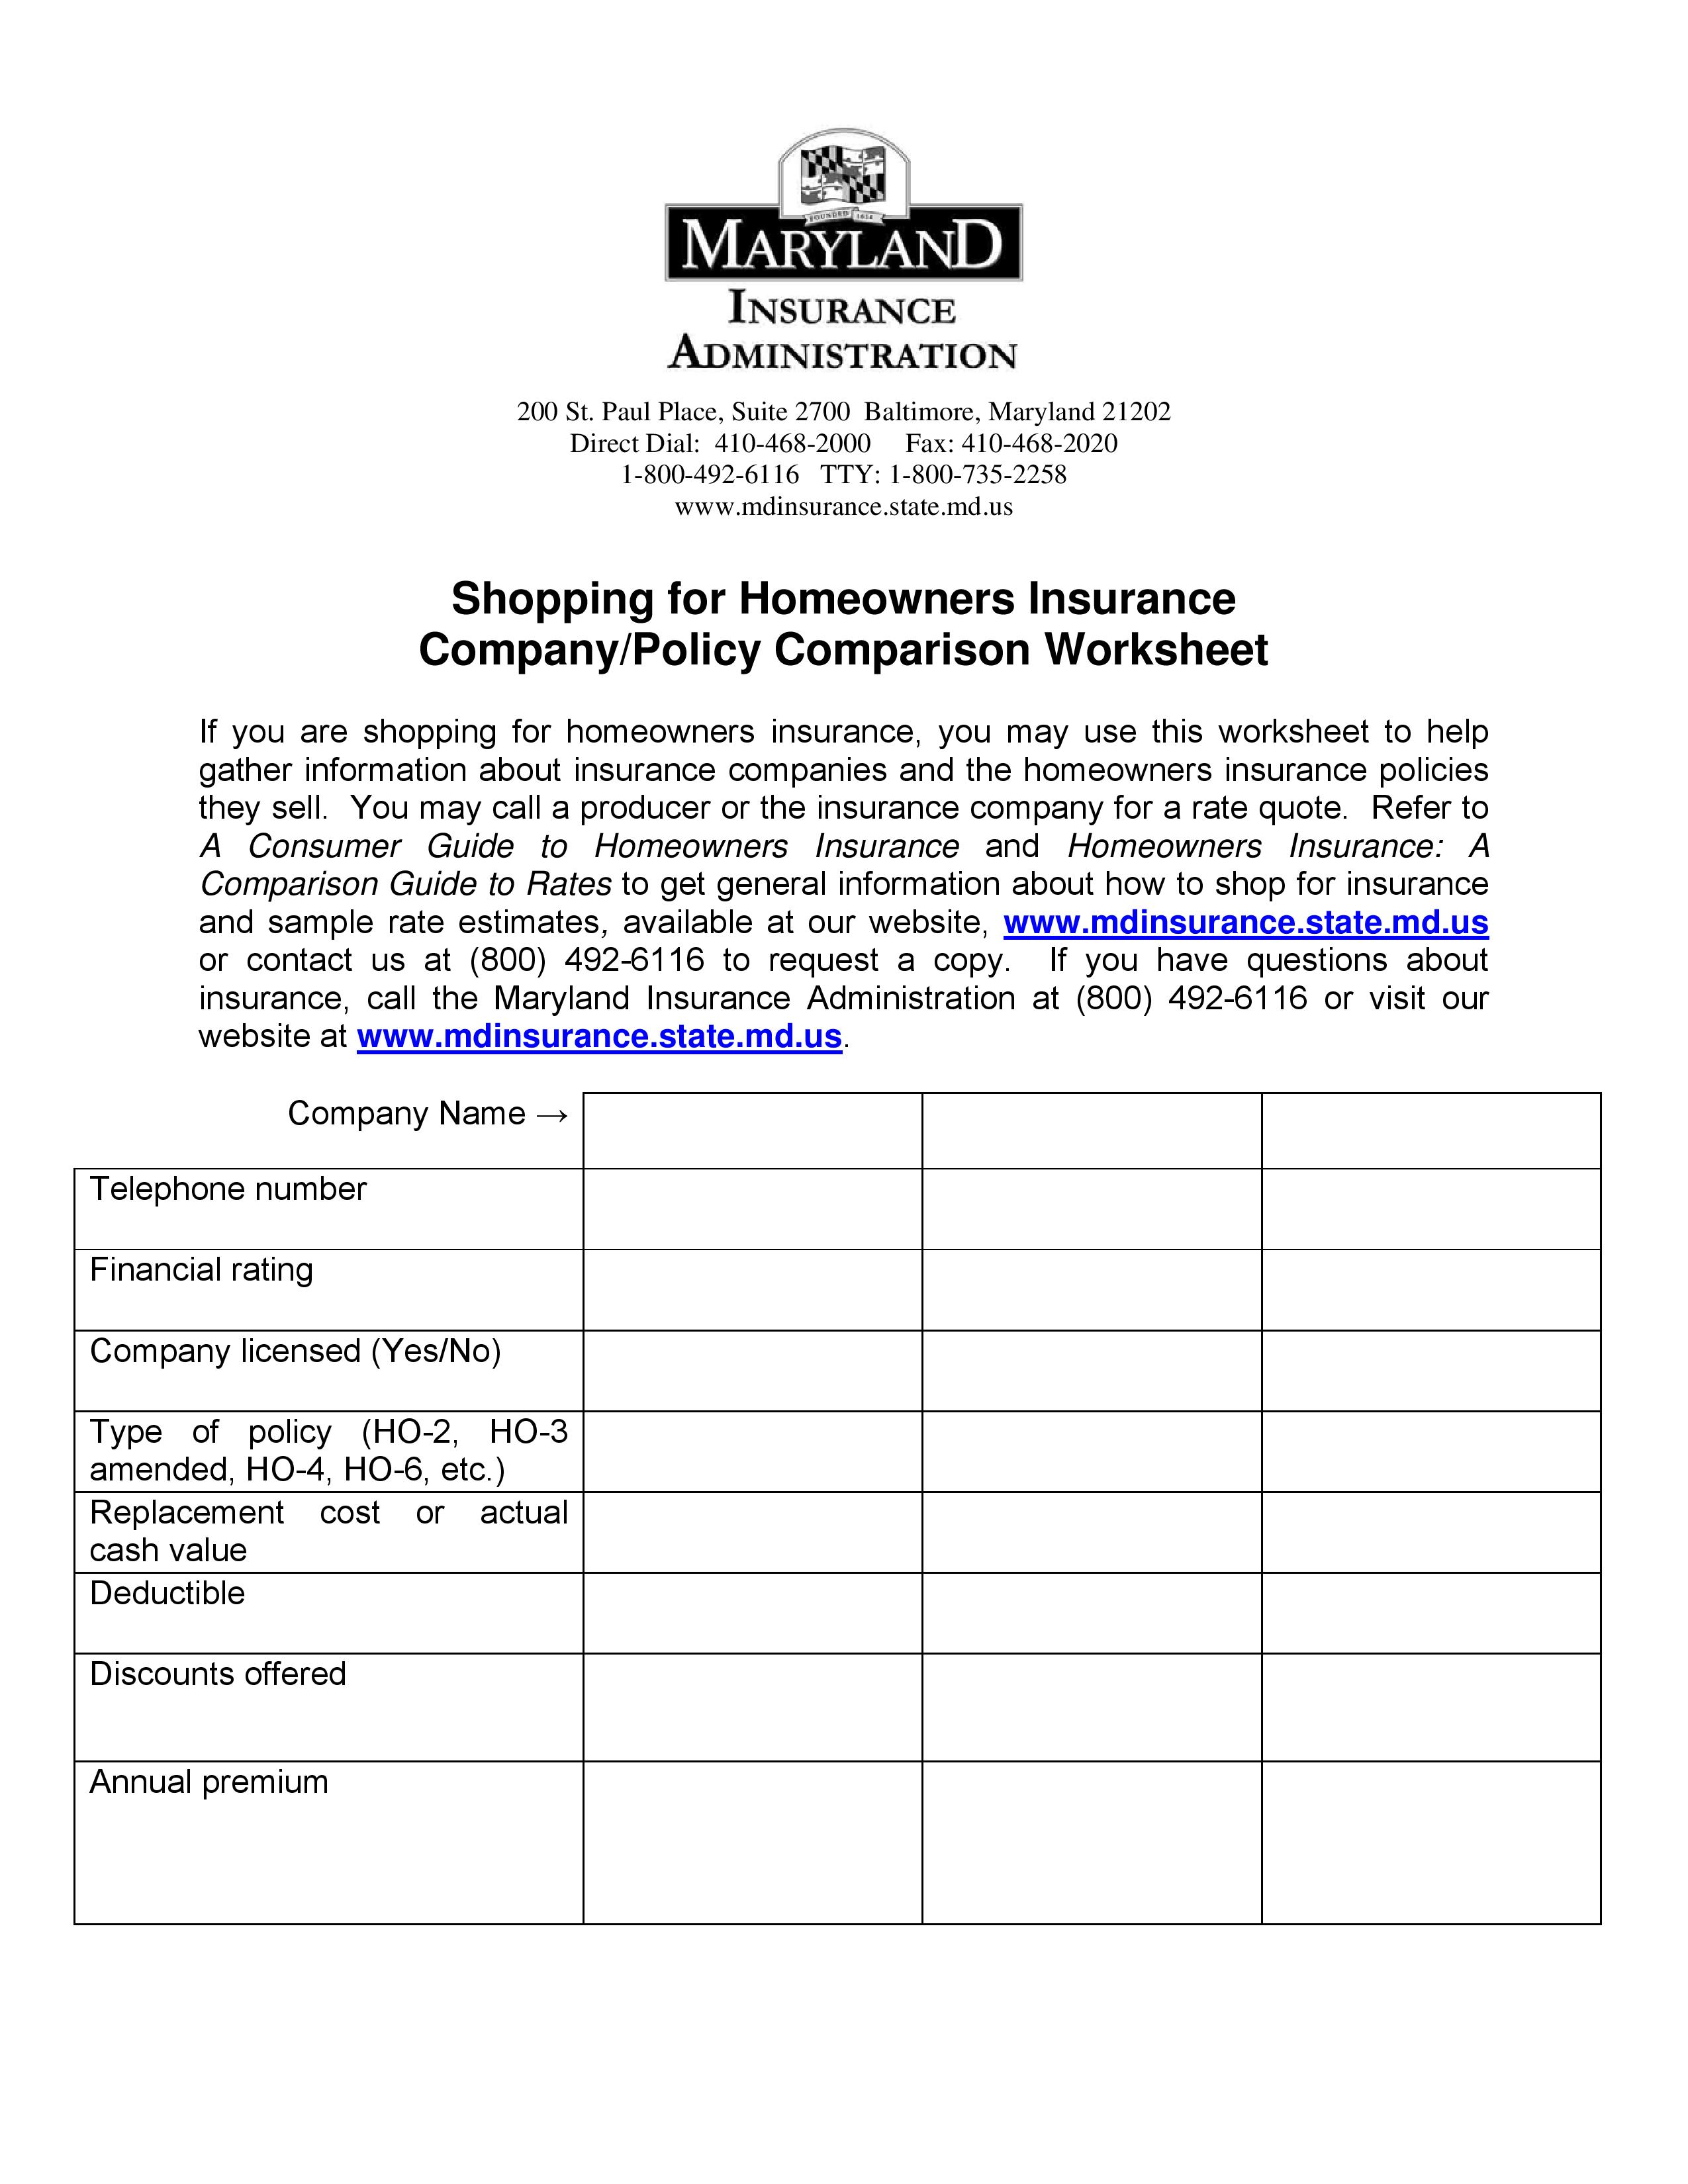 Homeowner's Insurance Shopping Worksheet - Use this worksheet to ...